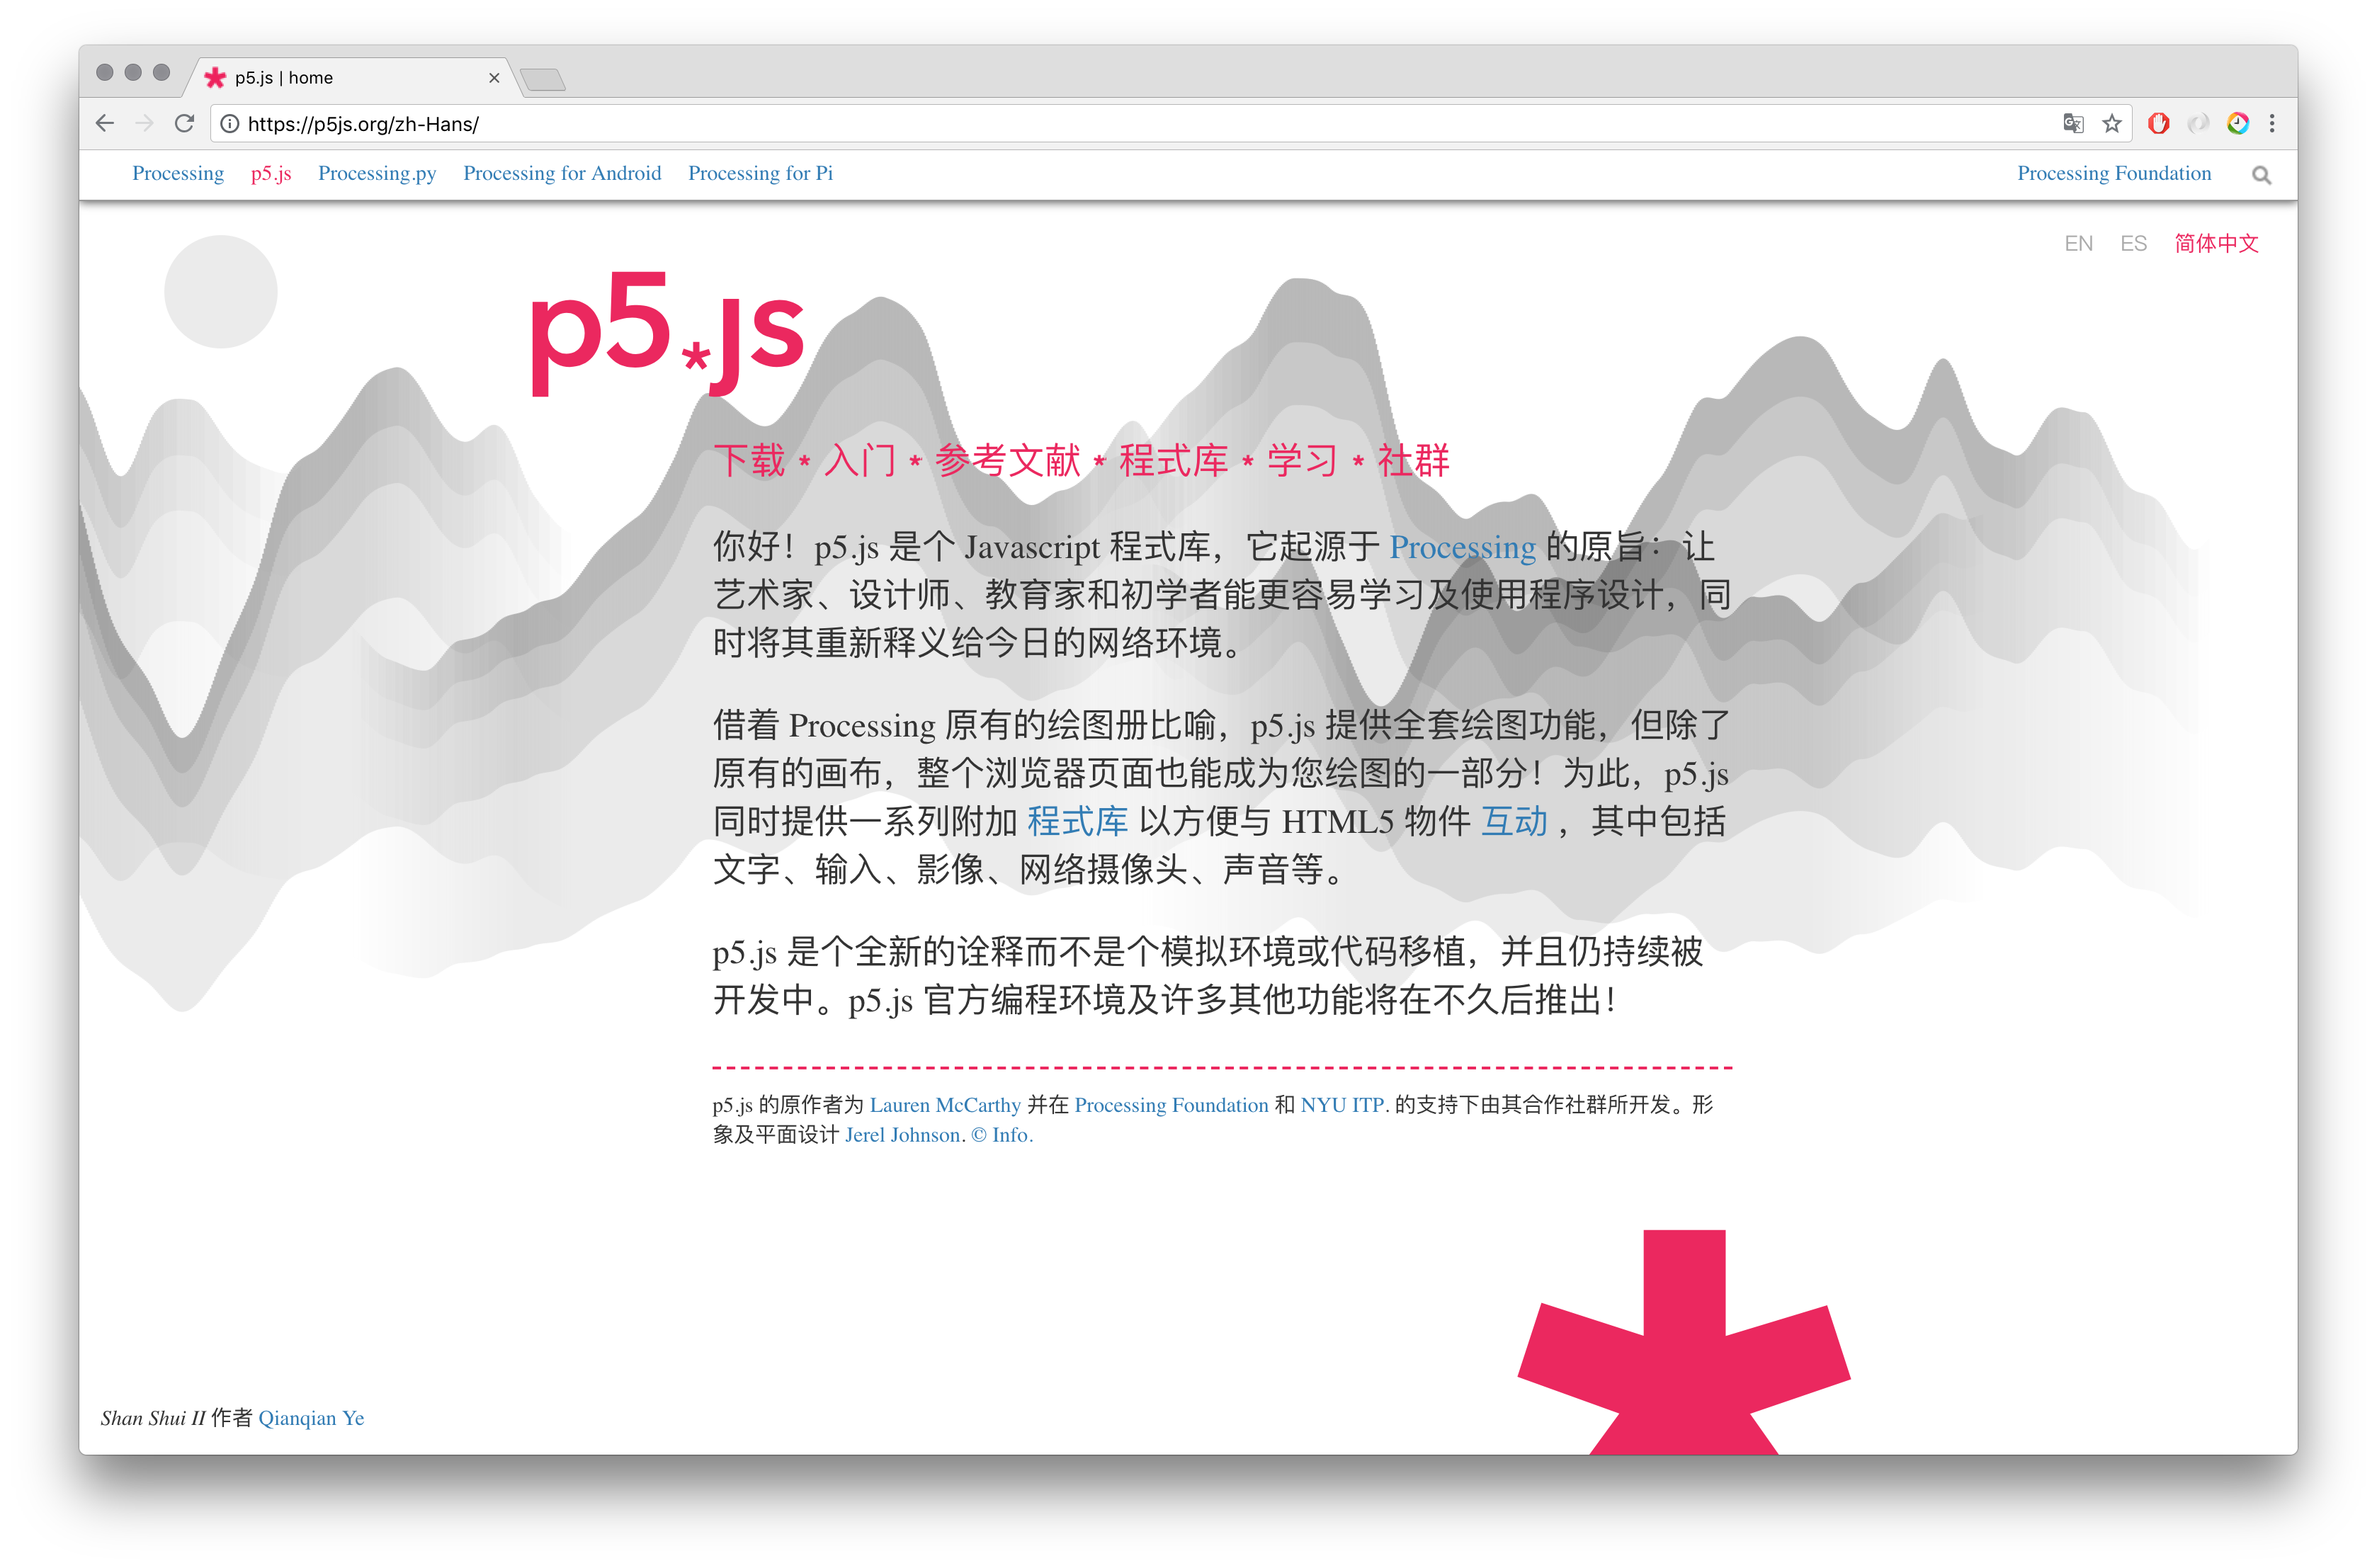 Chinese Translation for p5 js and preparing a future of more